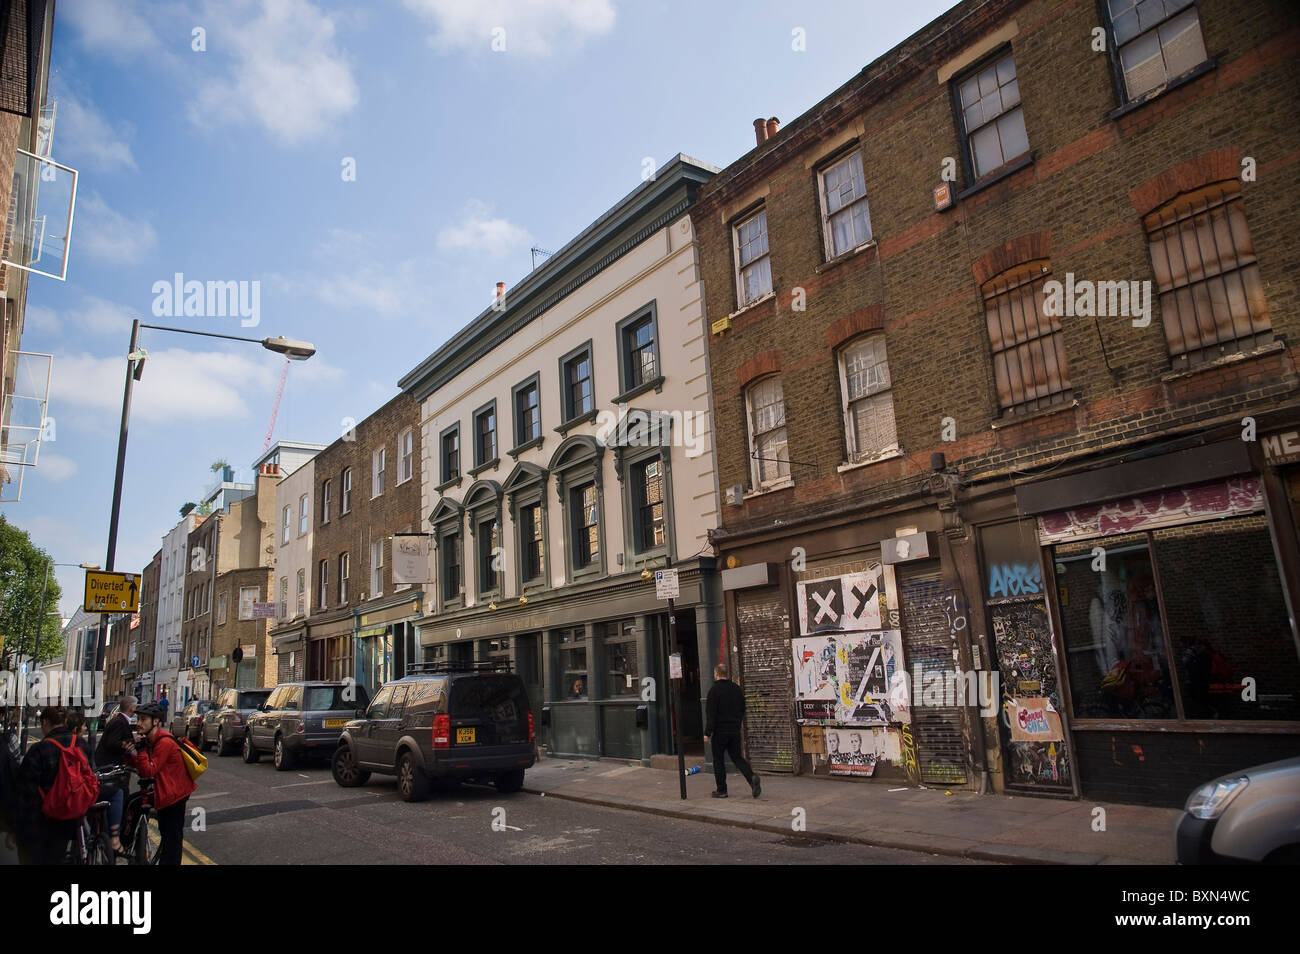 The Owl and the Pussycat Pub in Redchurch Street, Shoreditch, East London, UK - Stock Image